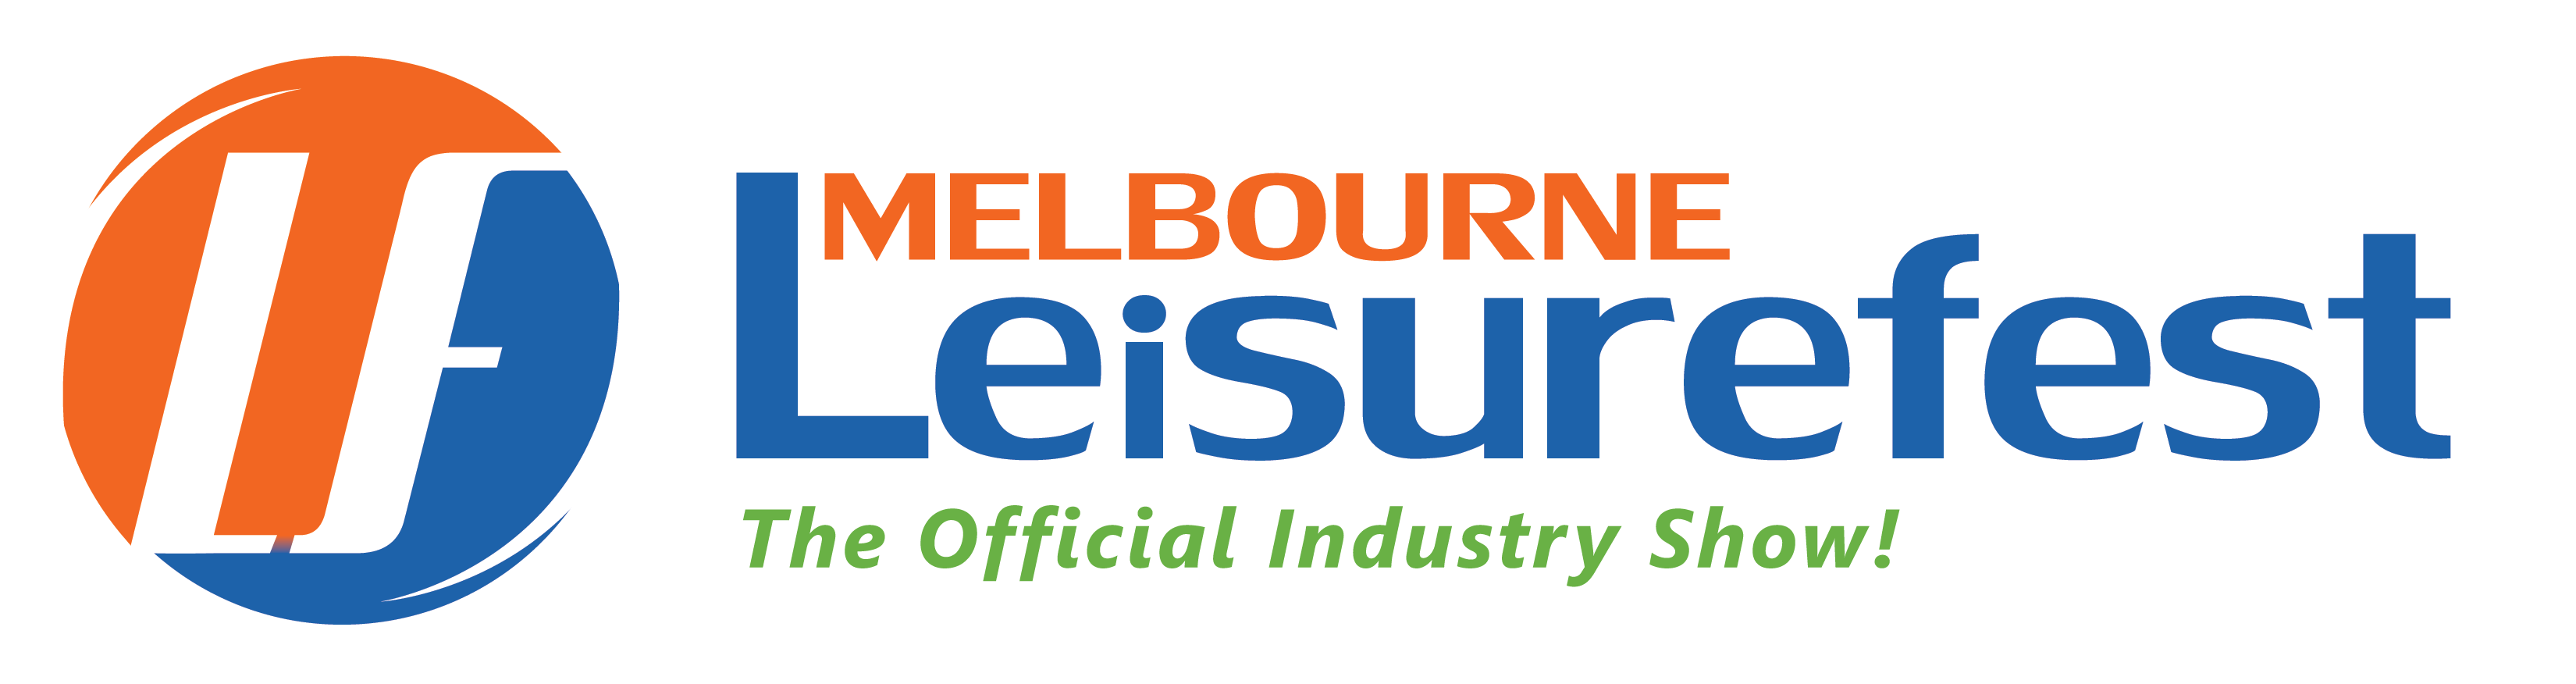 Melbourne Leisurefest Logo